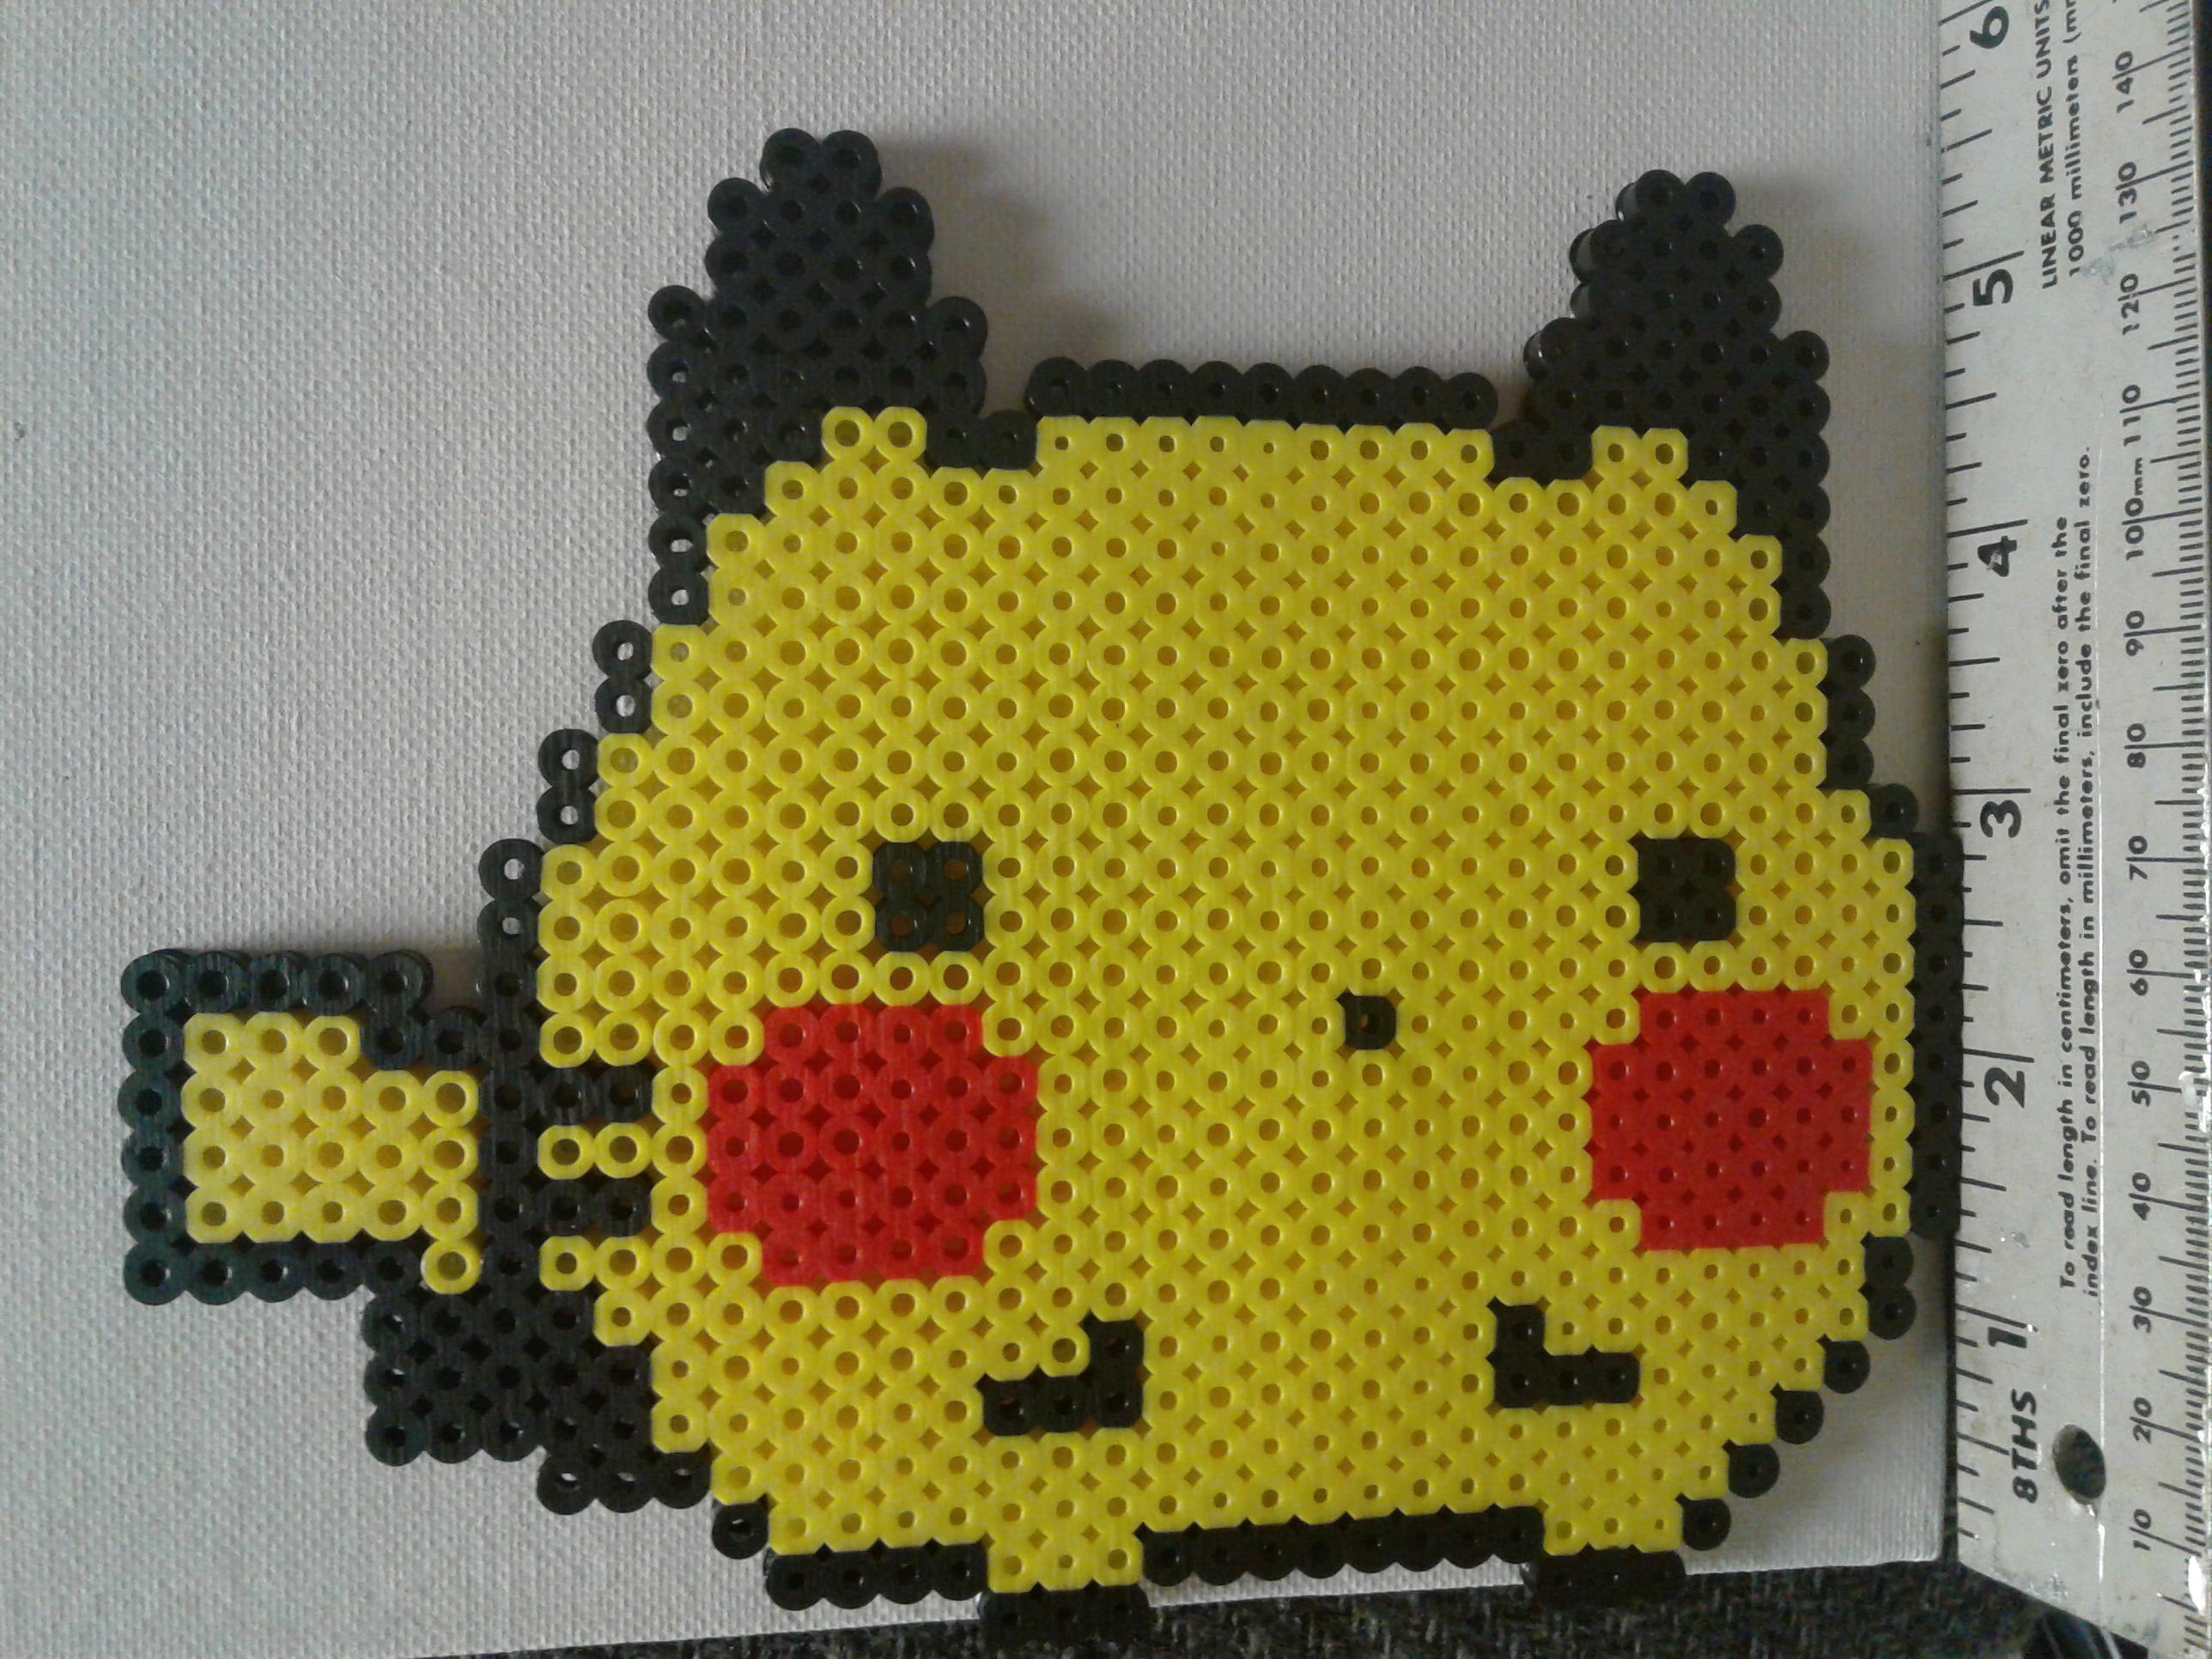 Cute Chubby Chibi Pikachu Perler Bead Sprite / Magnet sold by Crafty Couple